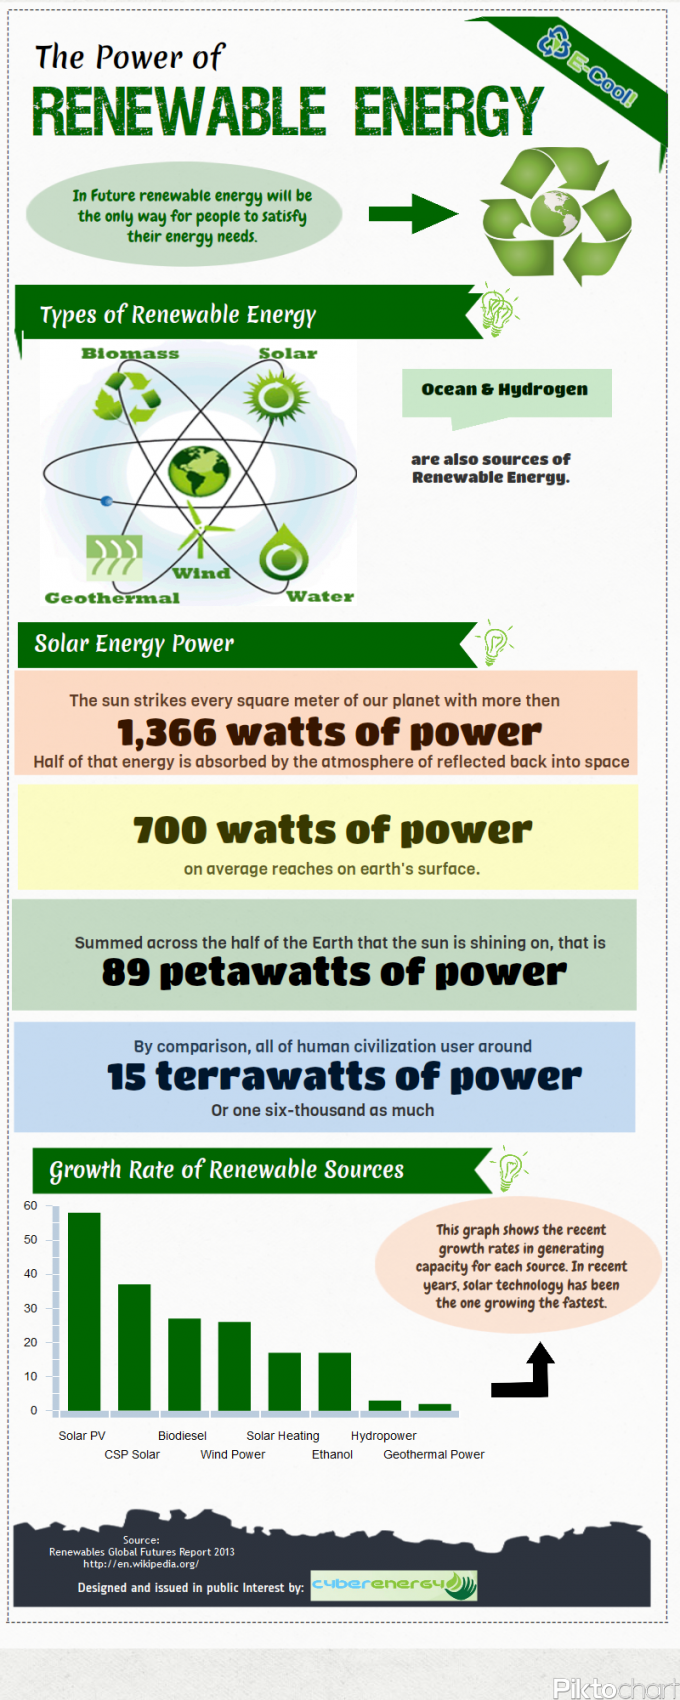 The Power of Renewable Energy